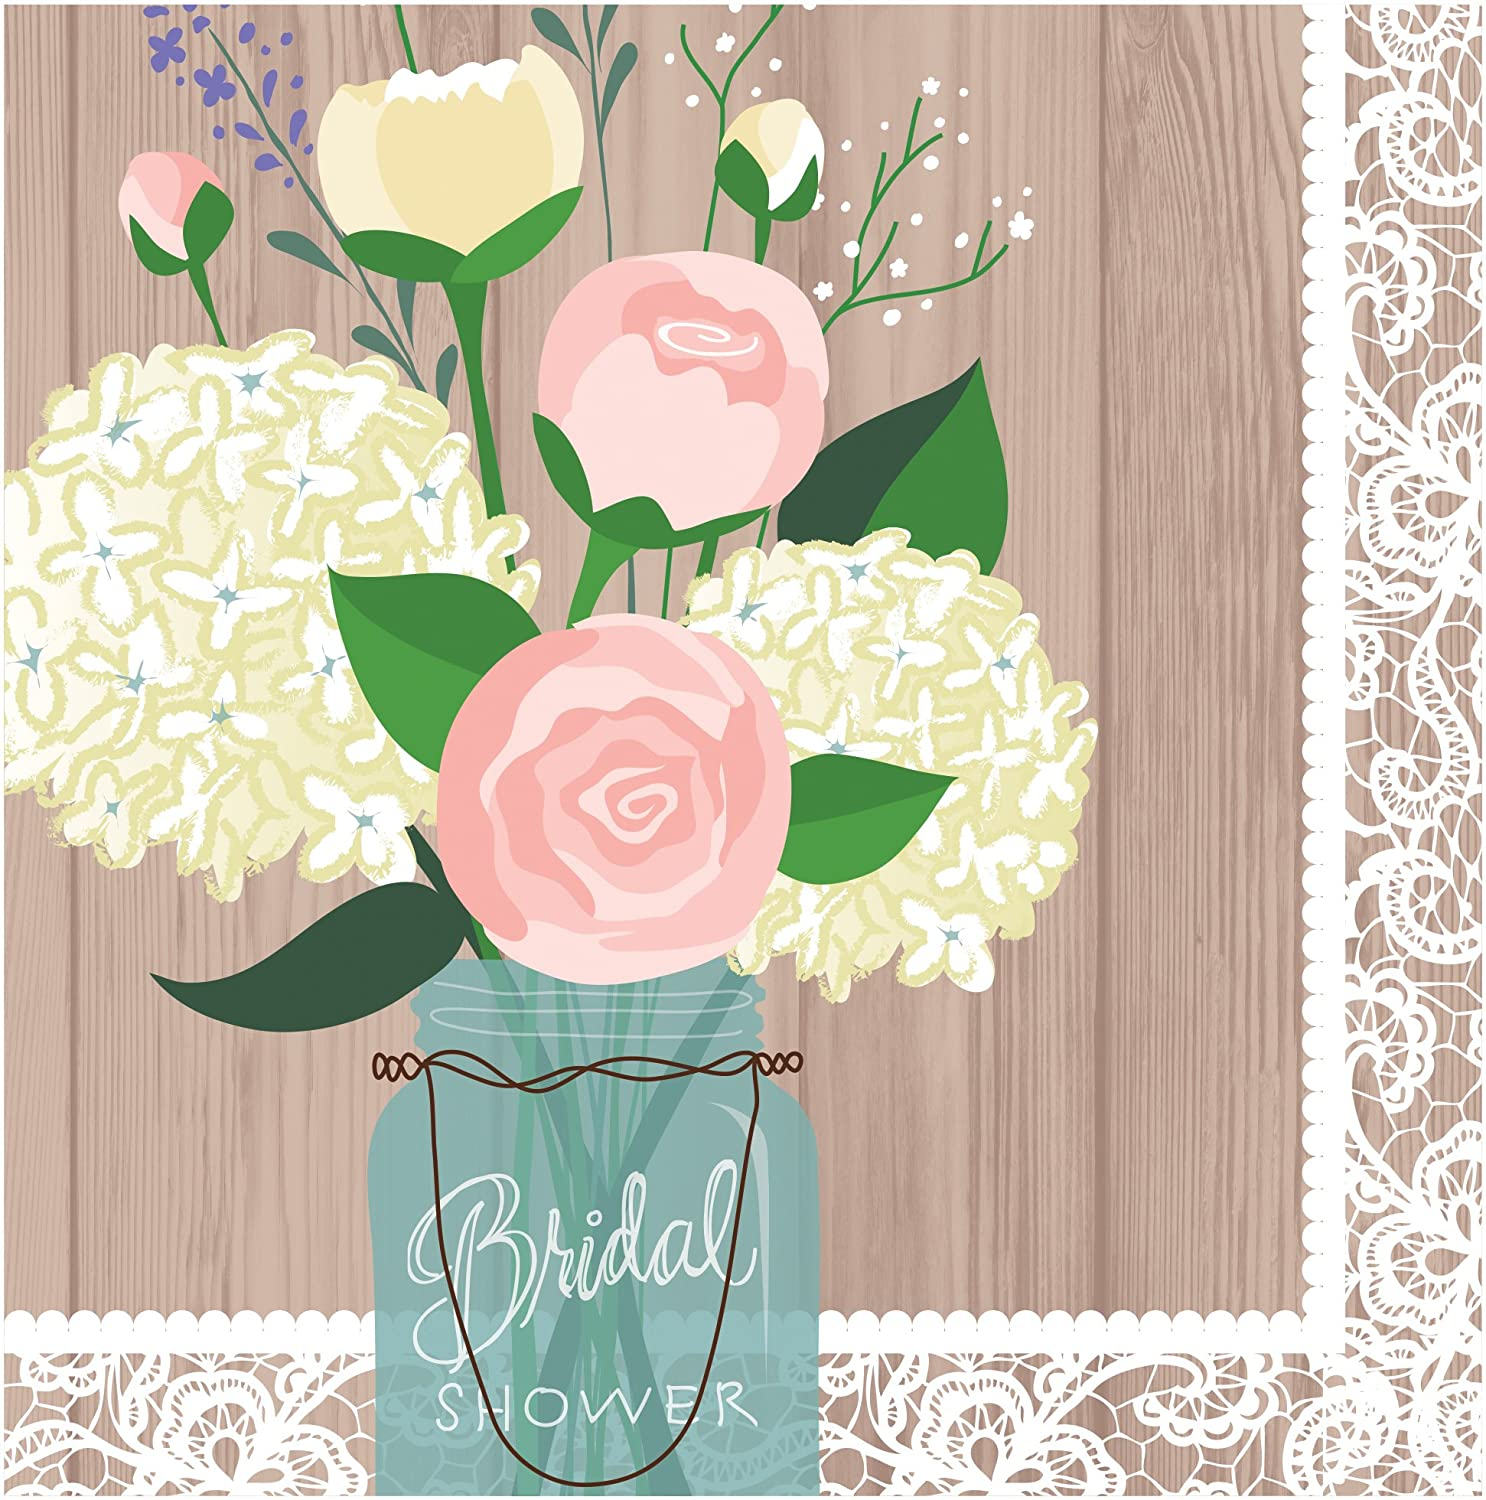 Amazon.com: Creative Converting 48 Count 3 Ply Bridal Shower Rustic ...